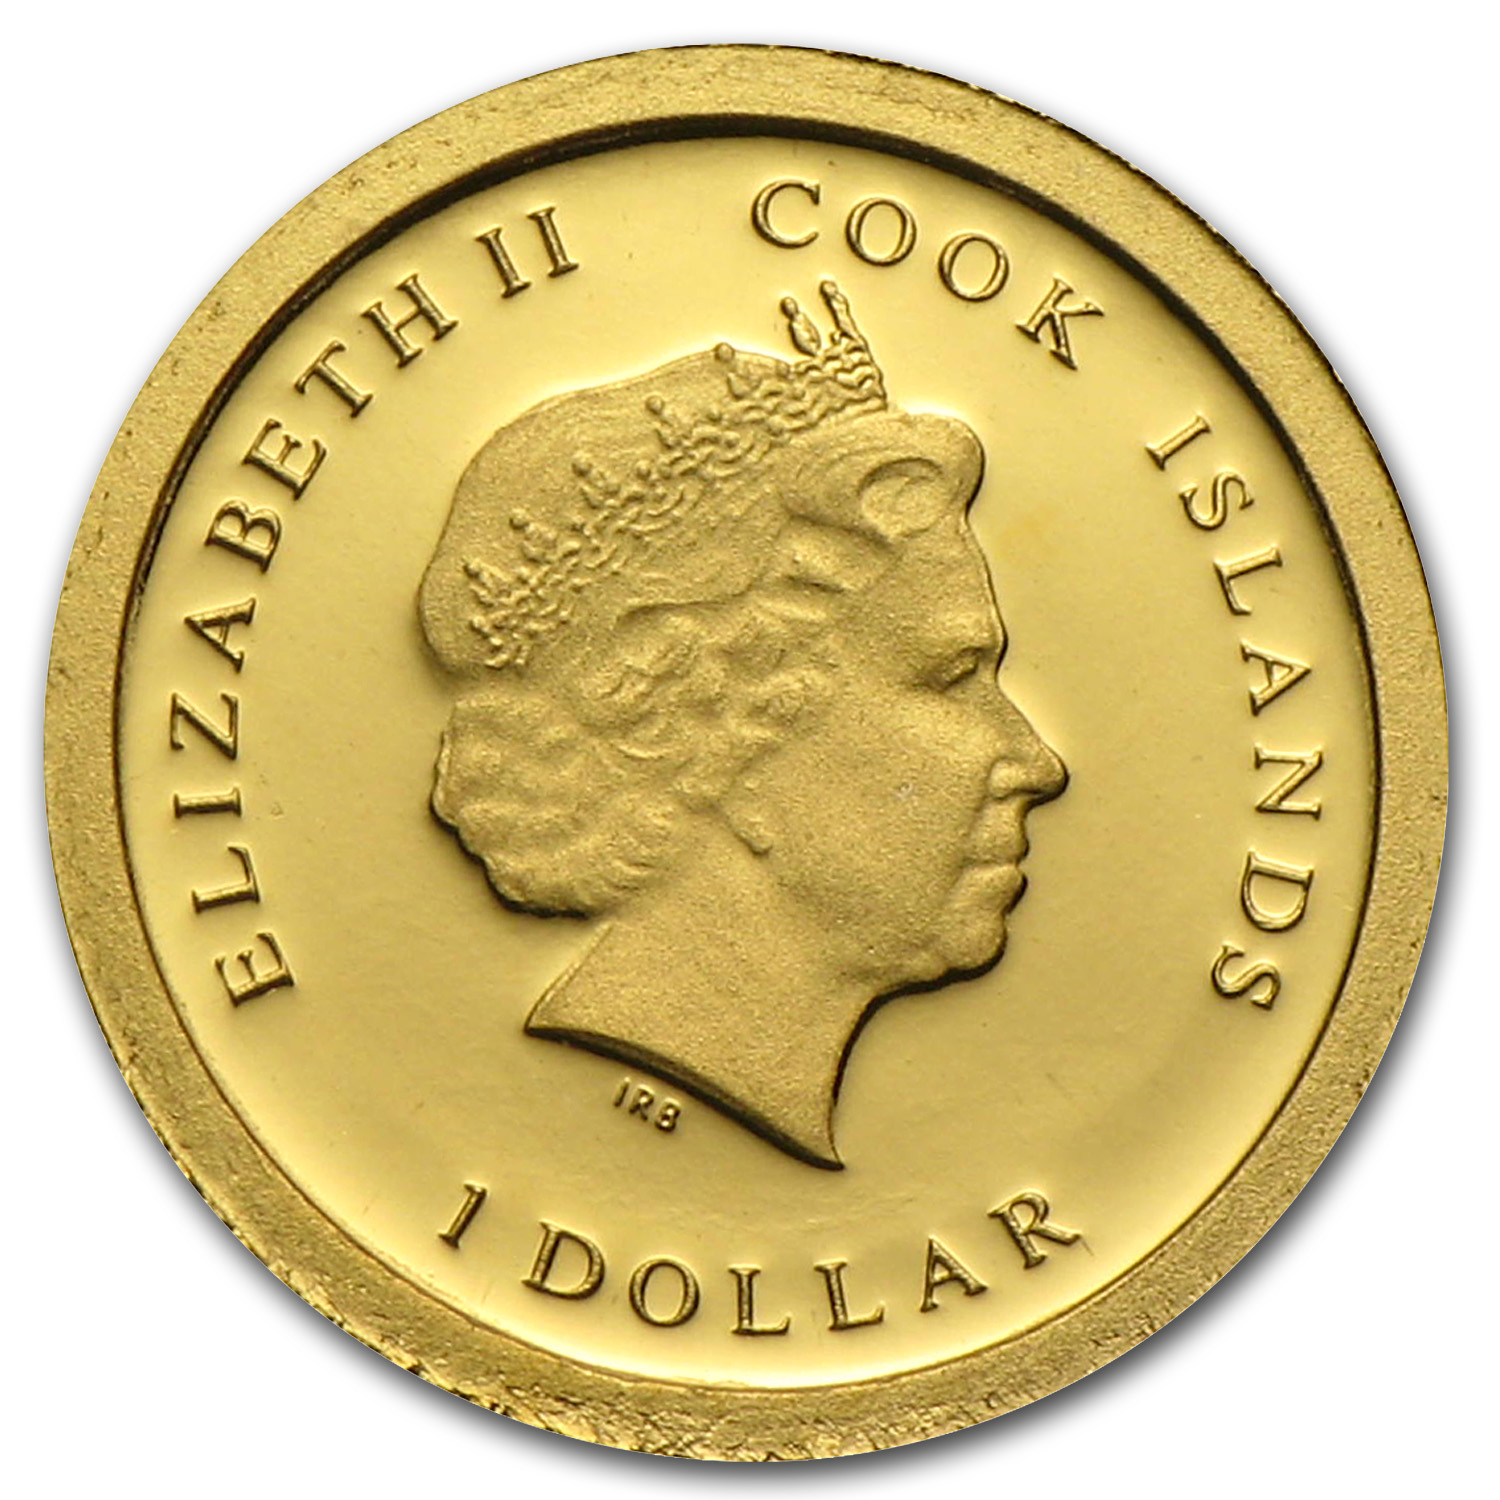 2013 Cook Islands Gold $1 Habemus Papam Franciscus